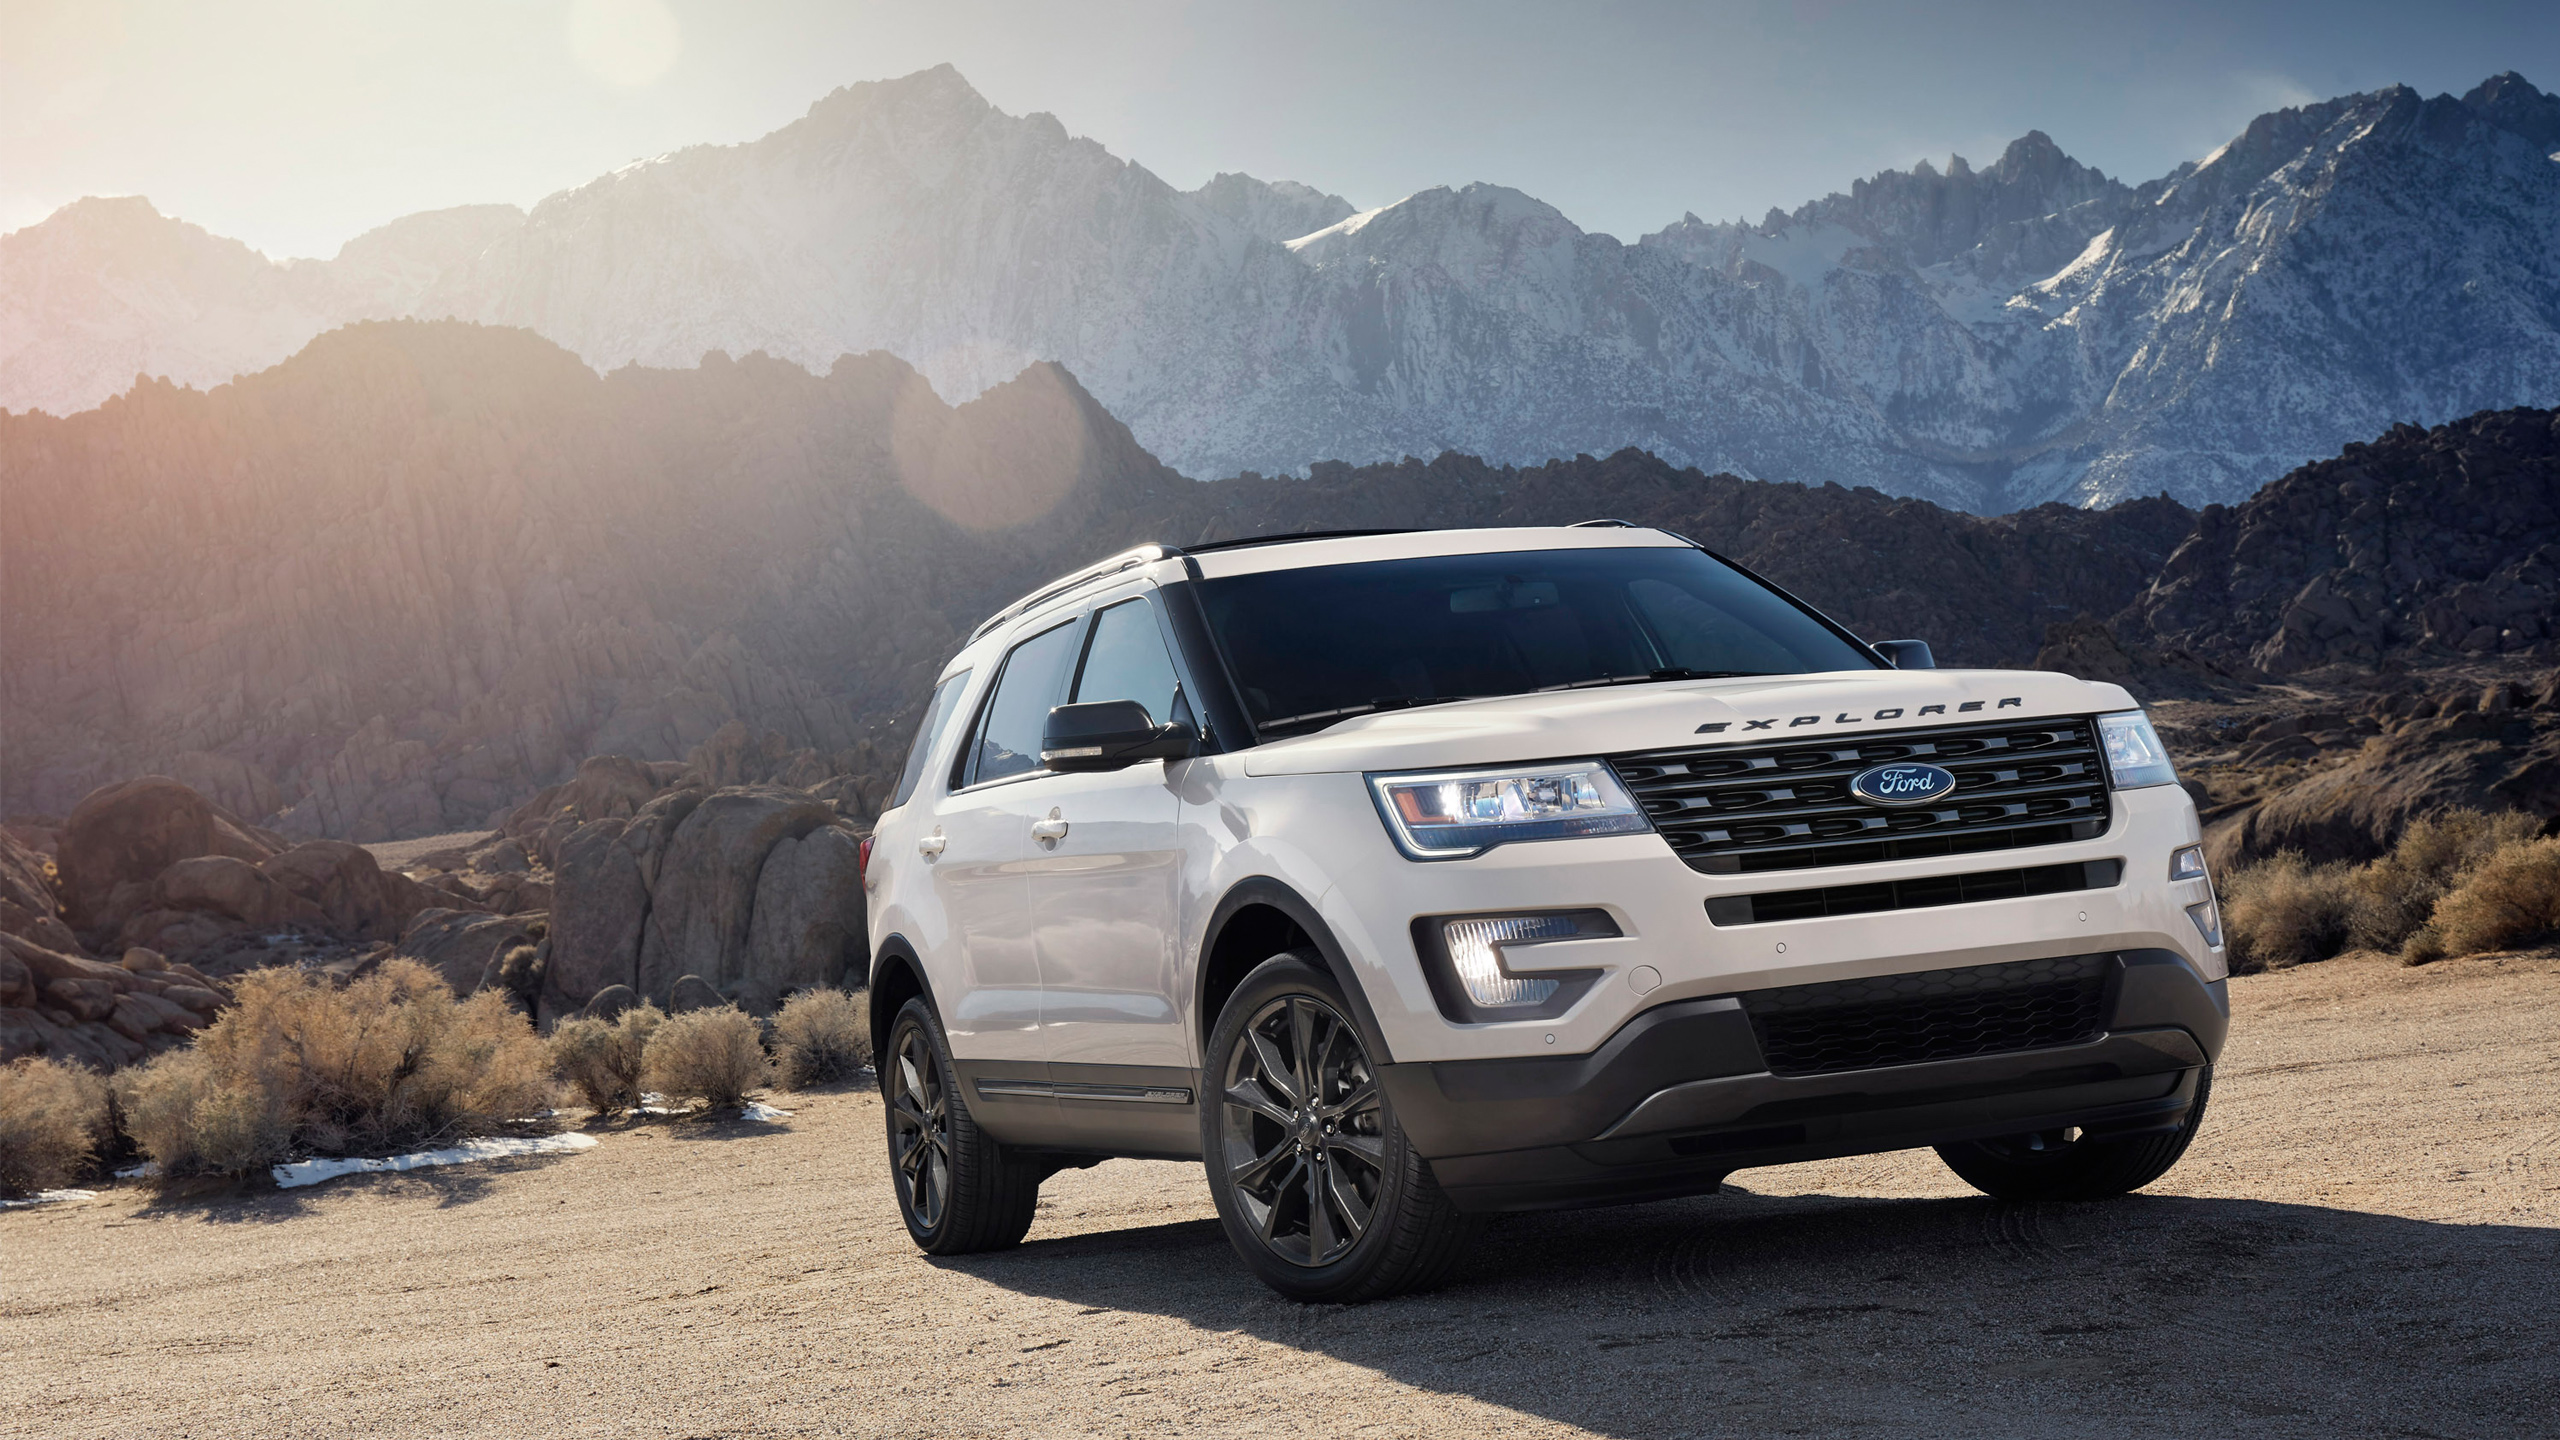 2006 Ford Explorer Xlt >> 2017 Ford Explorer XLT Appearance Package Wallpaper | HD Car Wallpapers | ID #6144